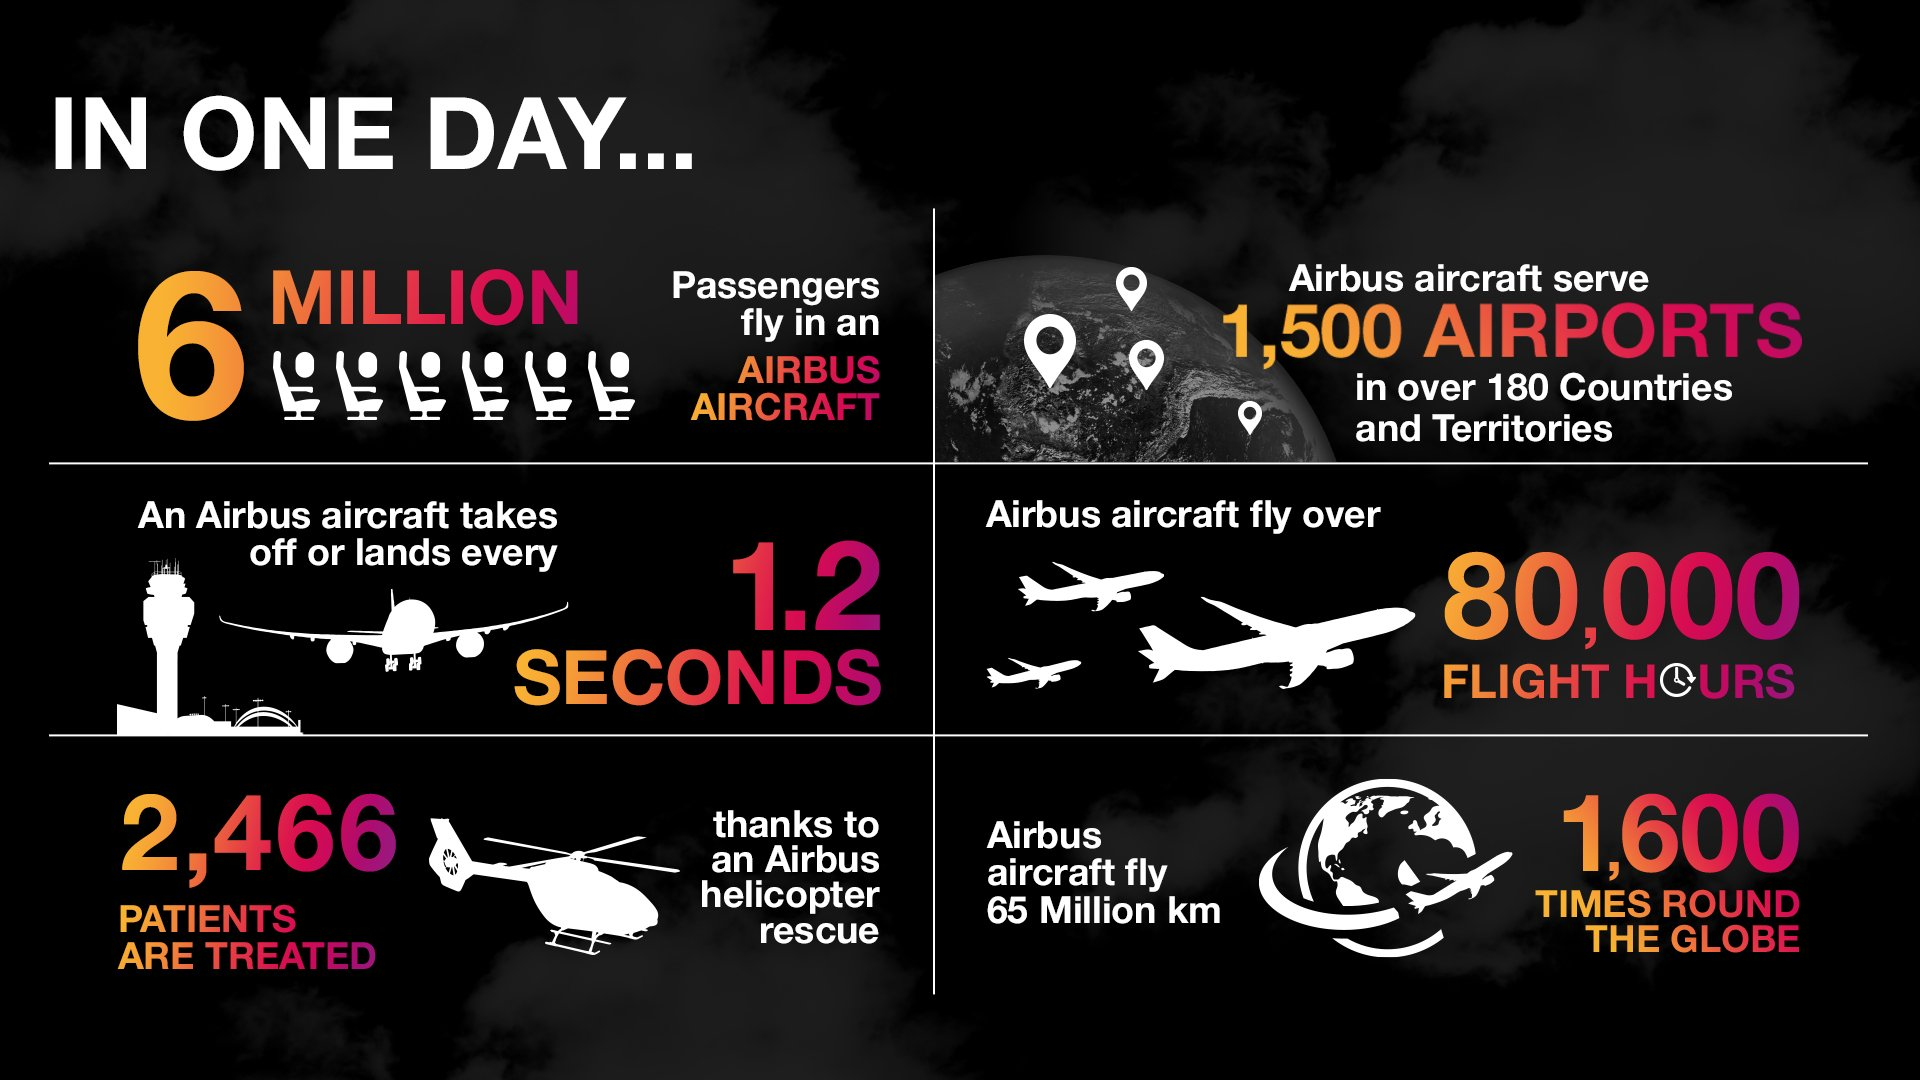 Airbus 50 Day 29 Asset Infographic